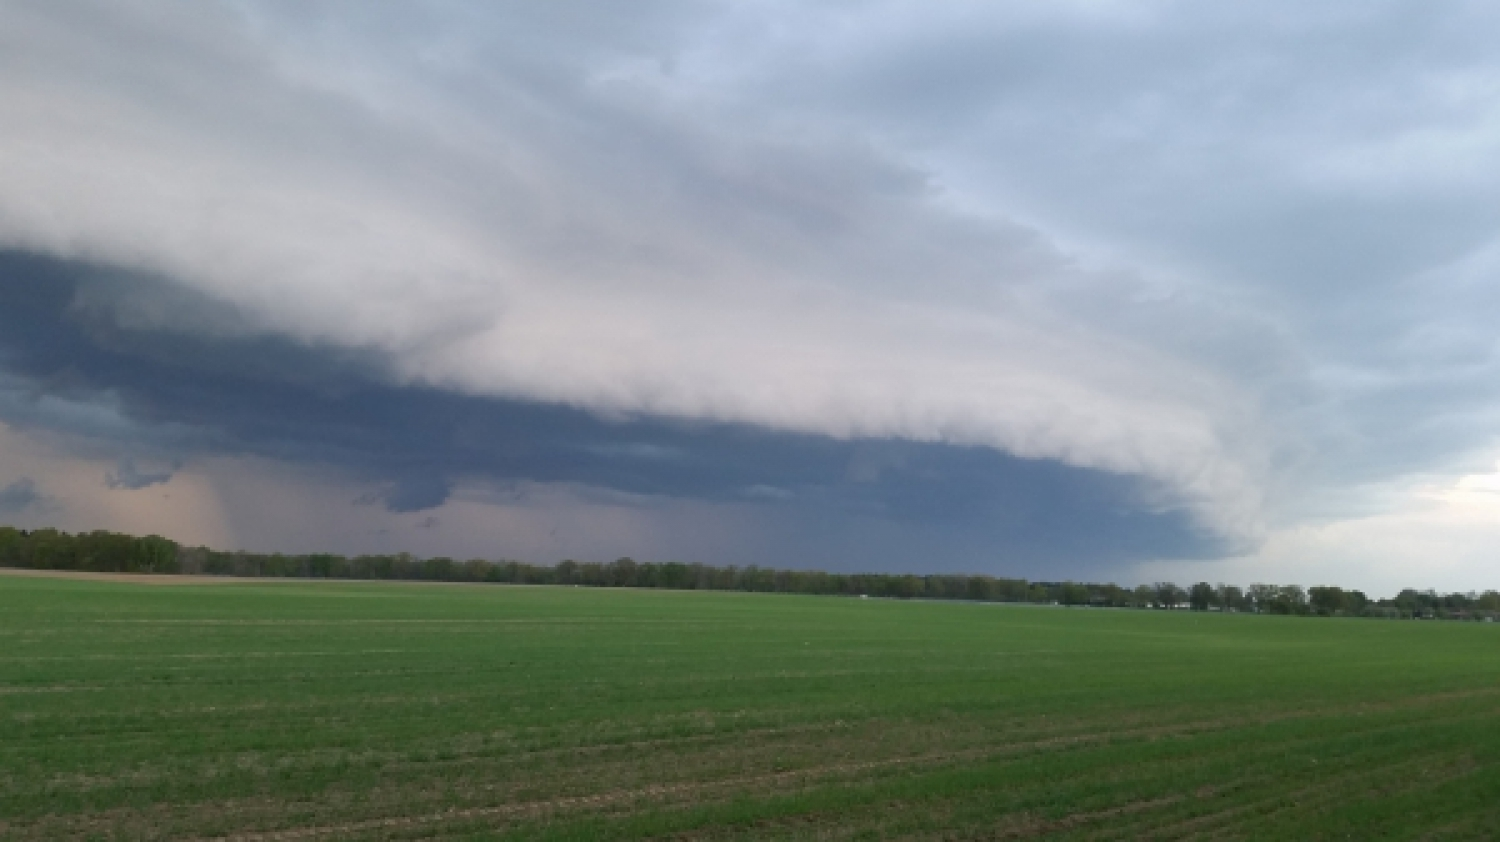 Shelfcloud am 05.05.2015